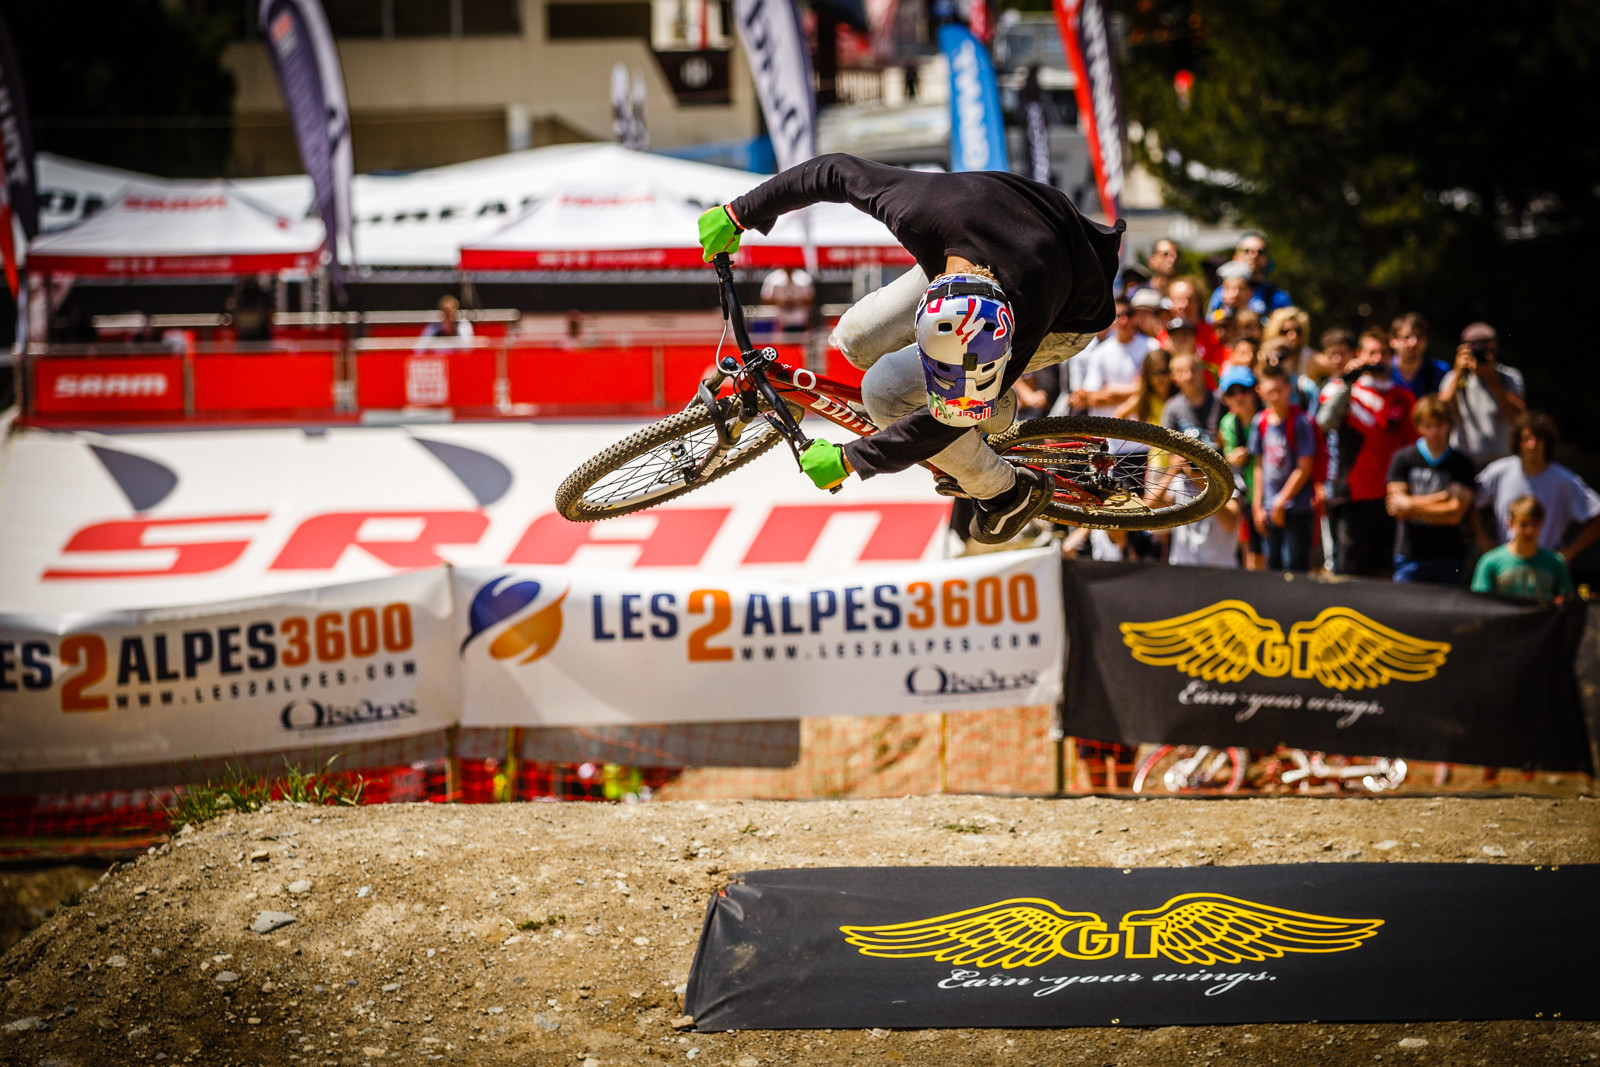 Martin Soderstrom Wins Crankworx L2A Dual Speed and Style - Crankworx L2A Speed and Style Photos and Results - Mountain Biking Pictures - Vital MTB